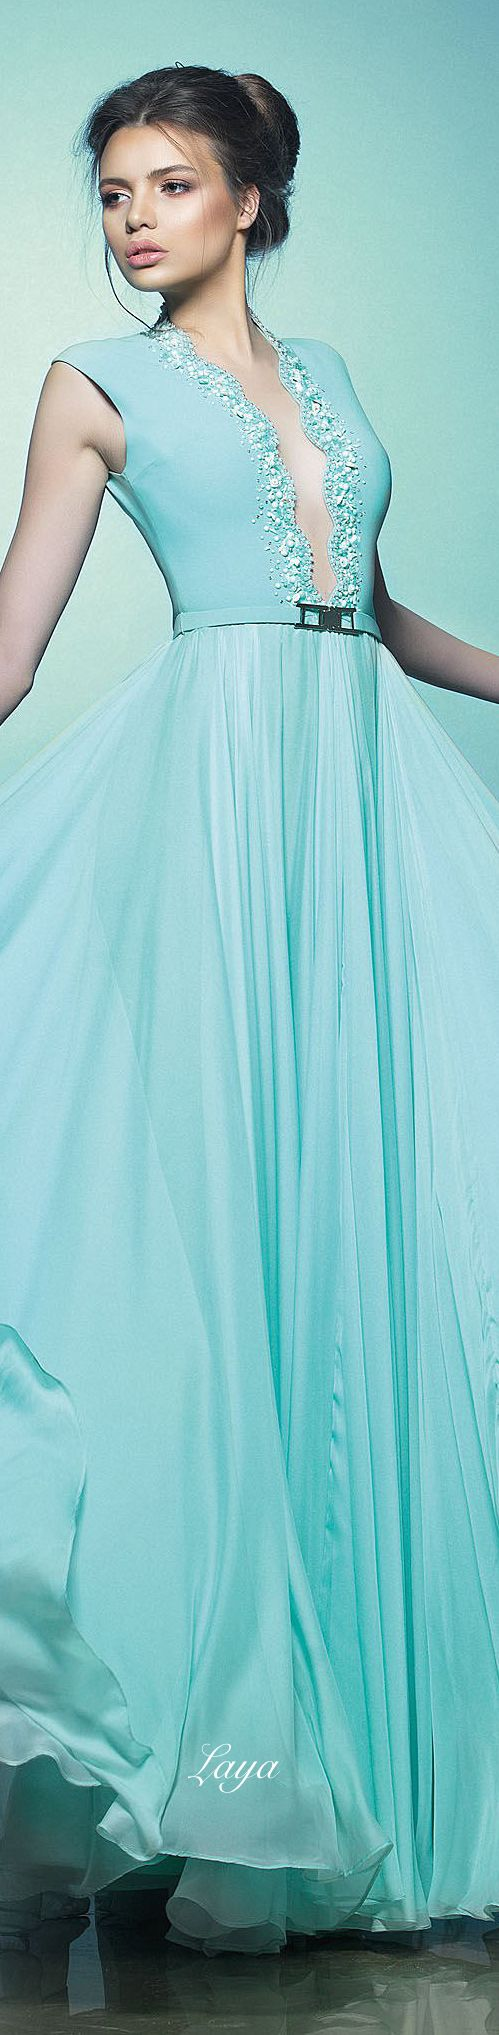 Saiid Kobeisy | Fashion and glamour | the mother of bride or groom | The color…